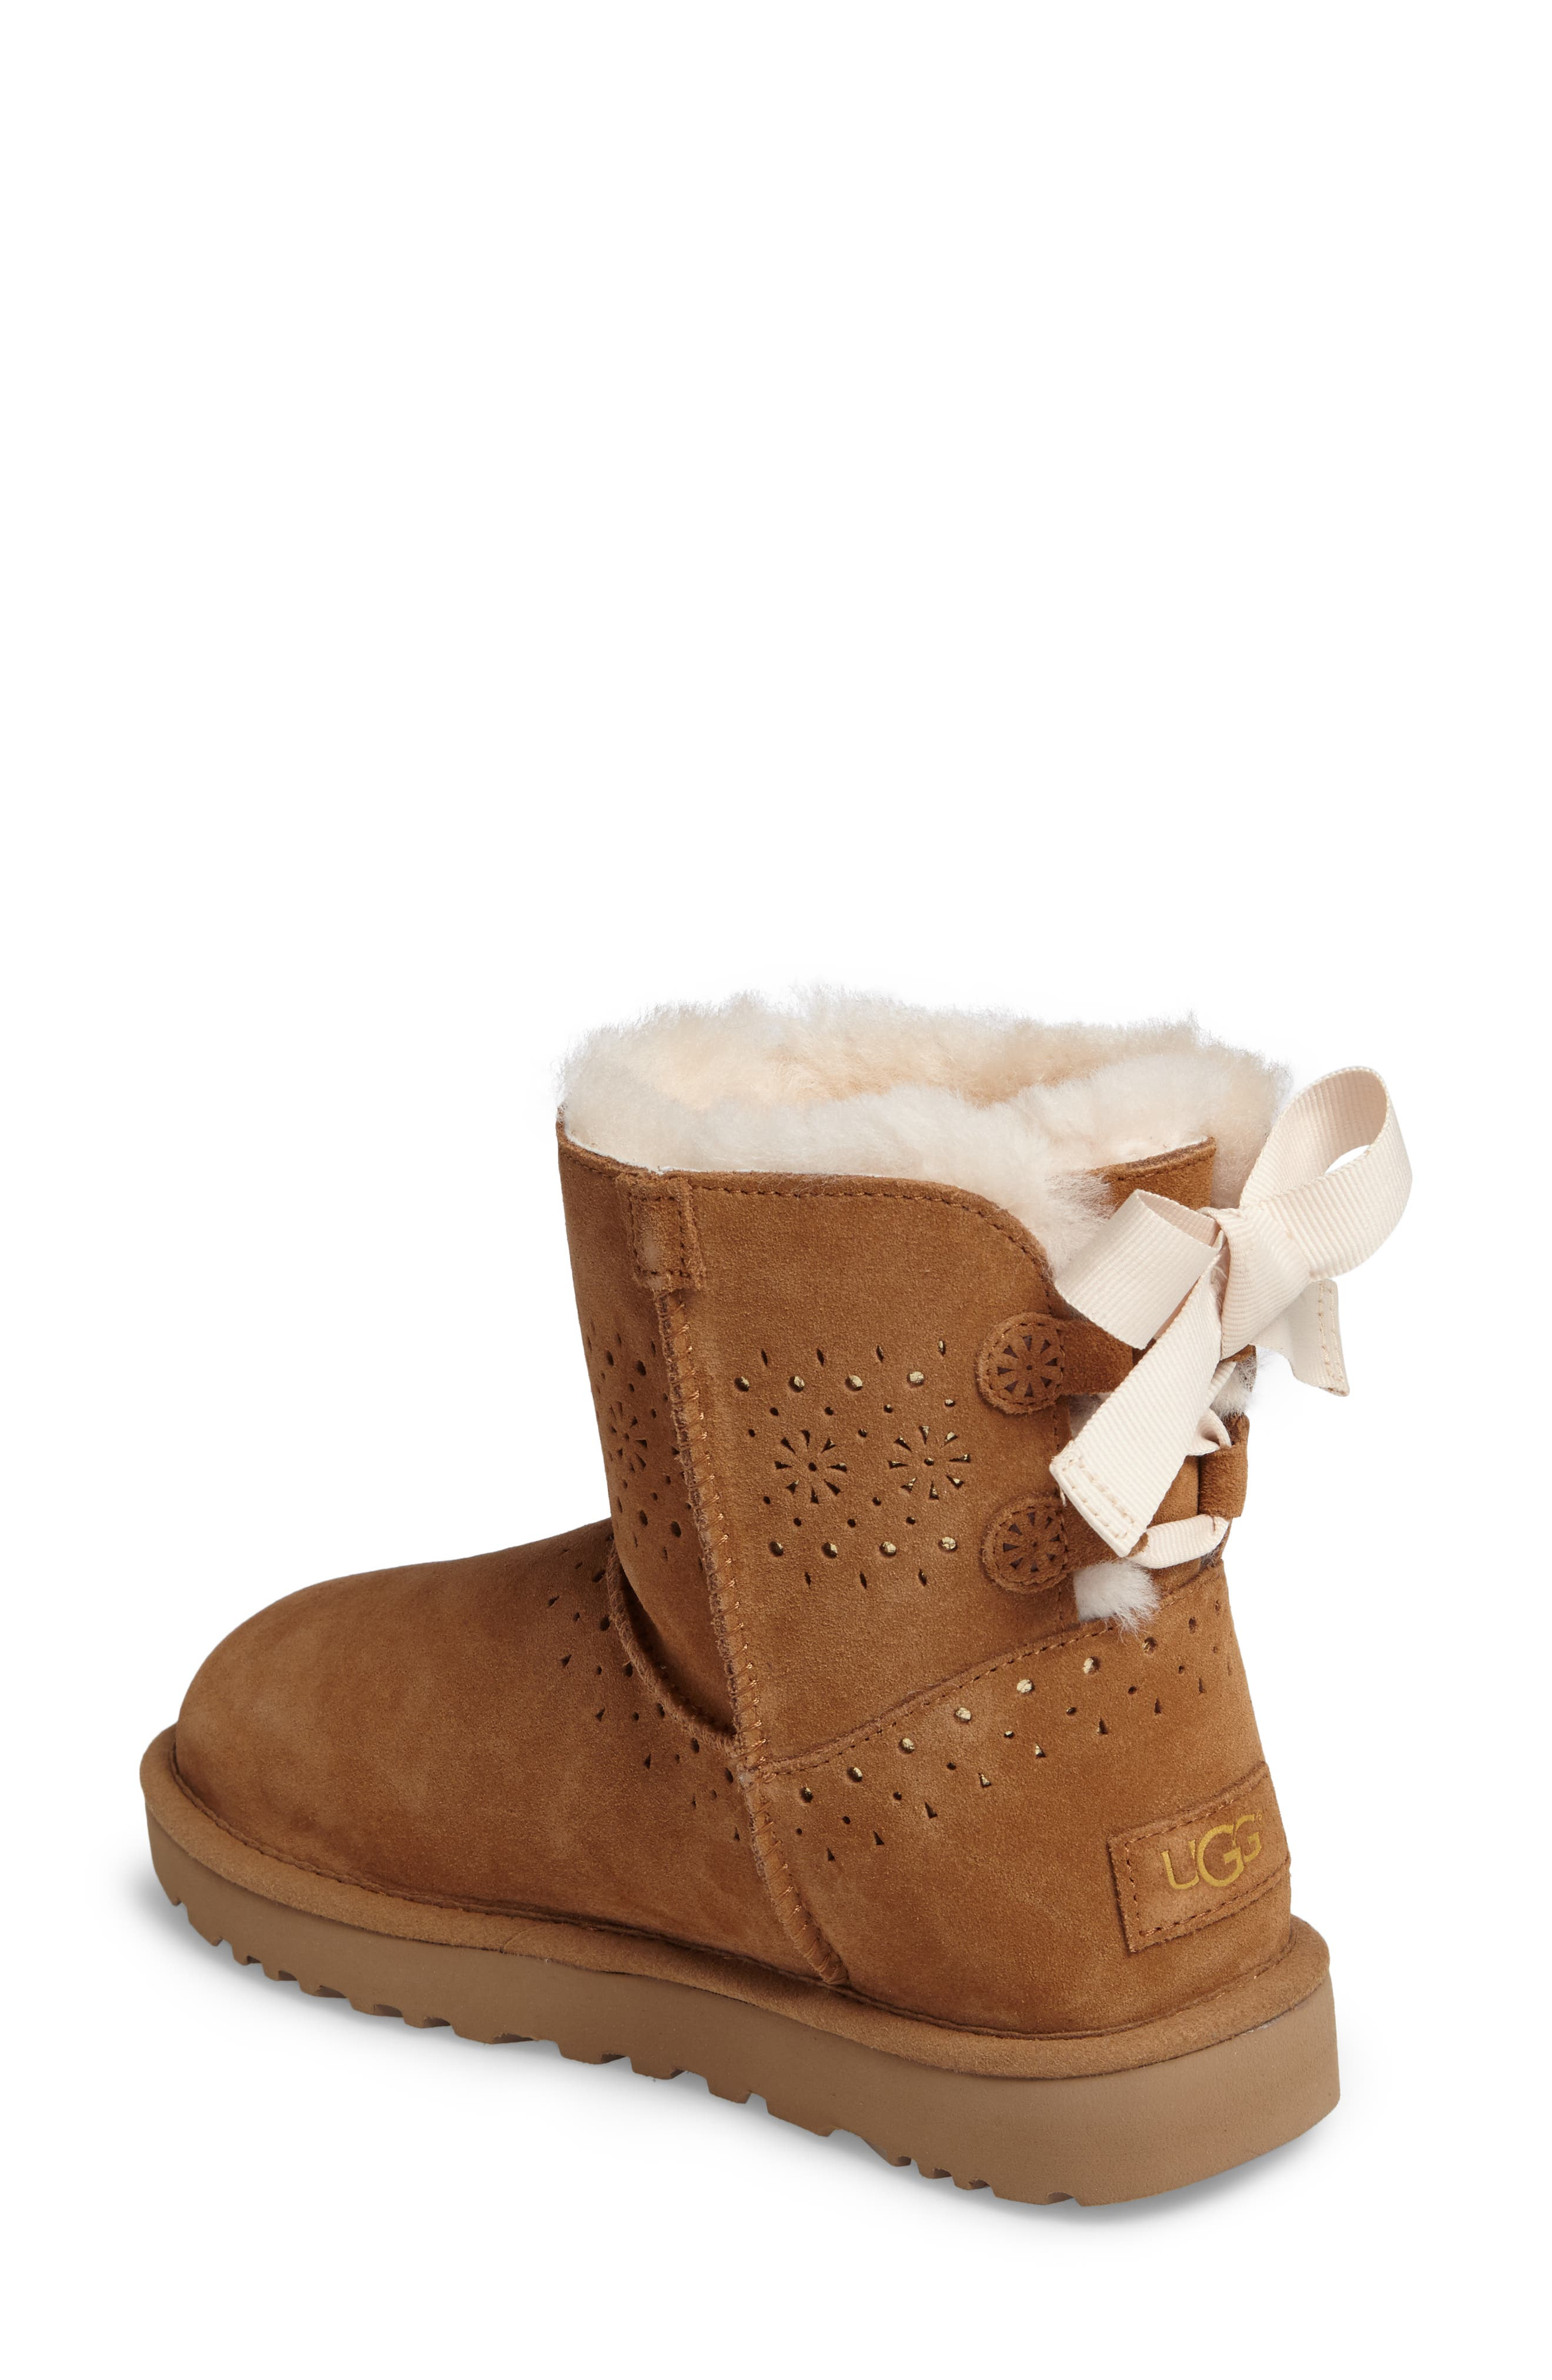 Alternate Image 2  - UGG® Dae Sunshine Boot (Women)